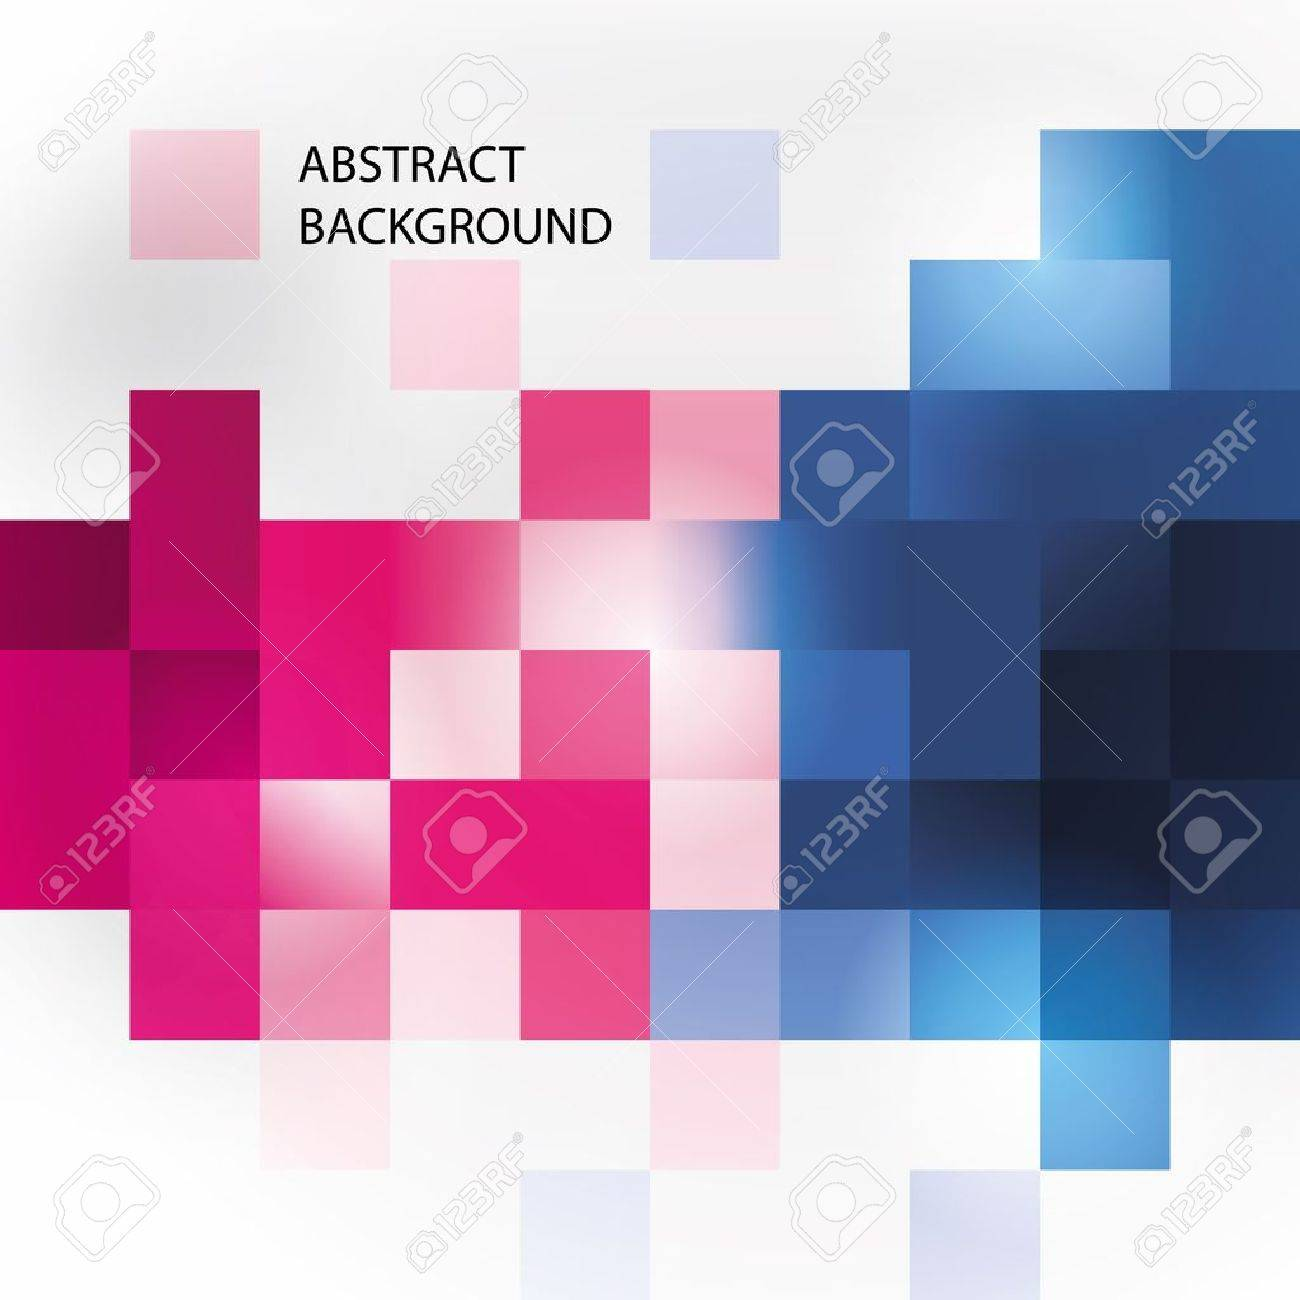 Abstract Background Vector Stock Vector - 11818097